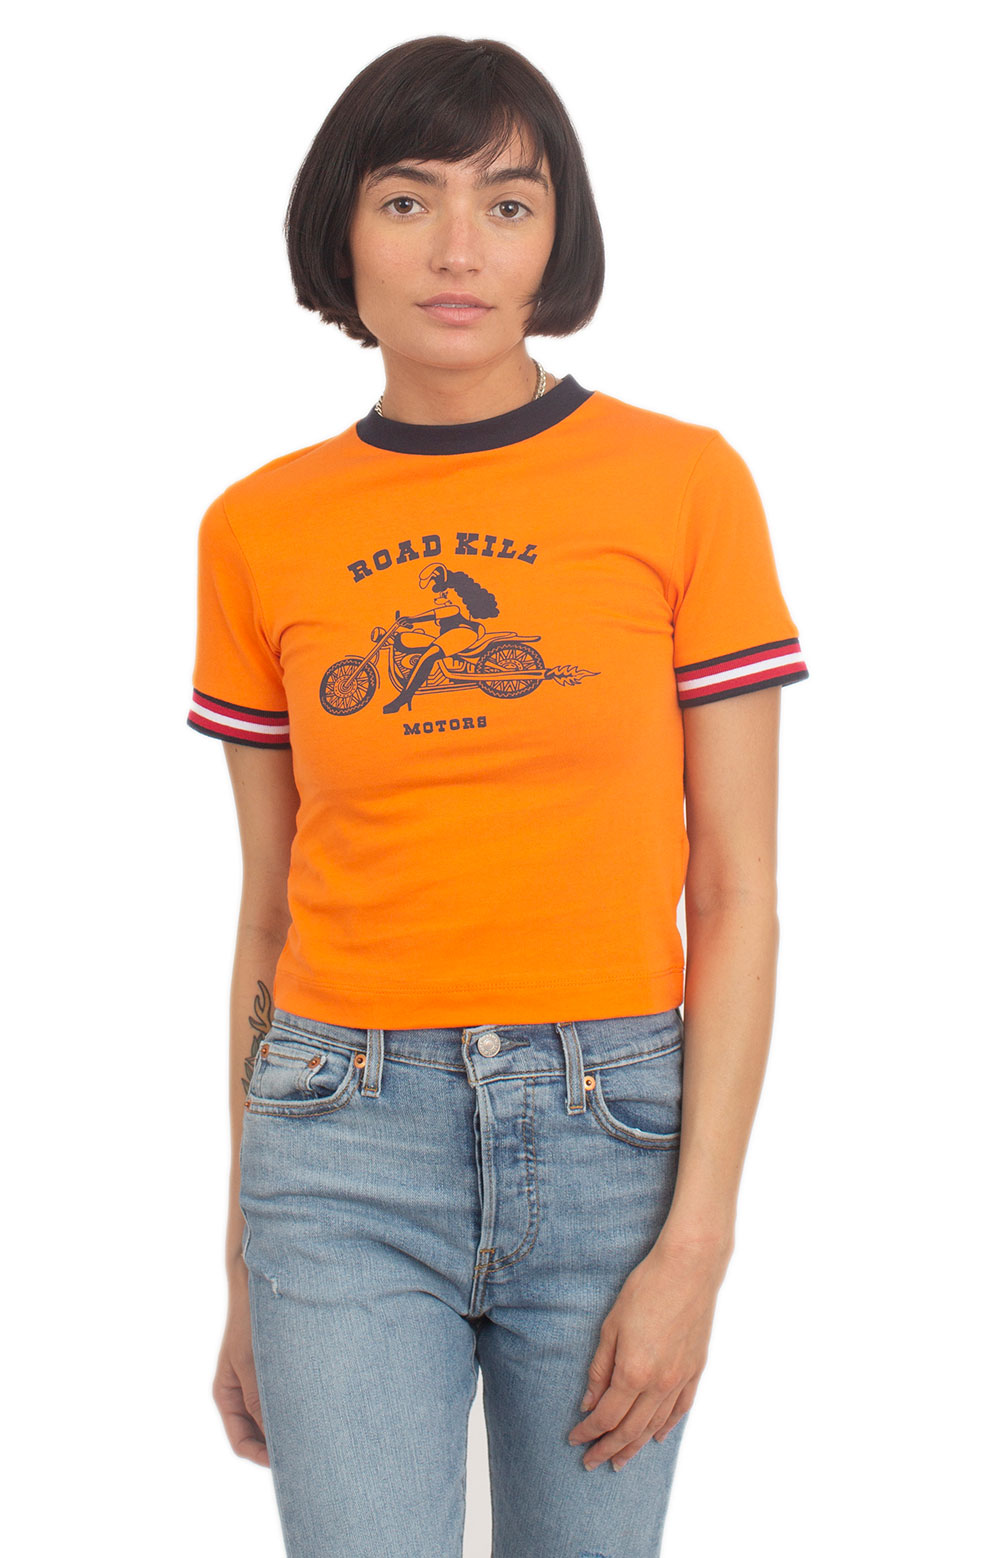 Road Kill Motors Fitted T-Shirt